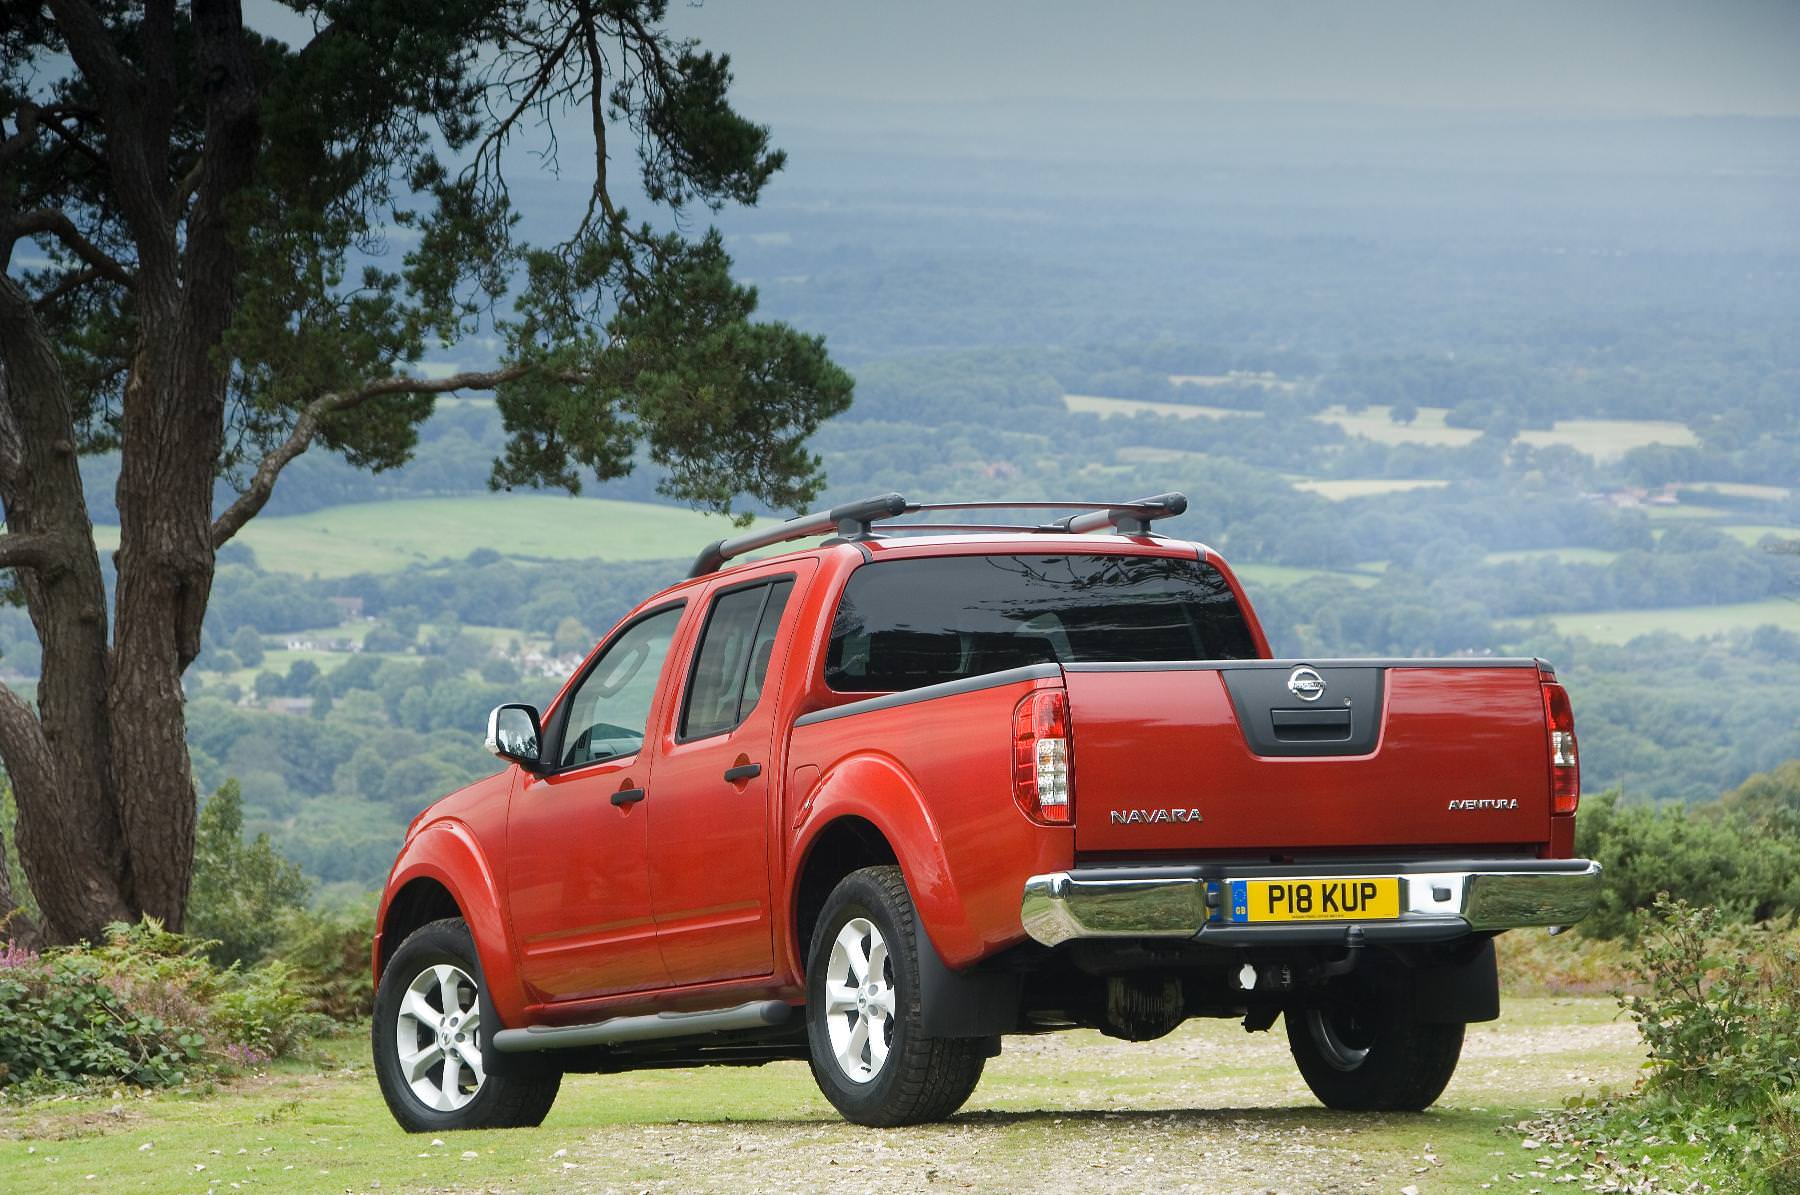 Nissan Navara - Pickup truck buyers guide